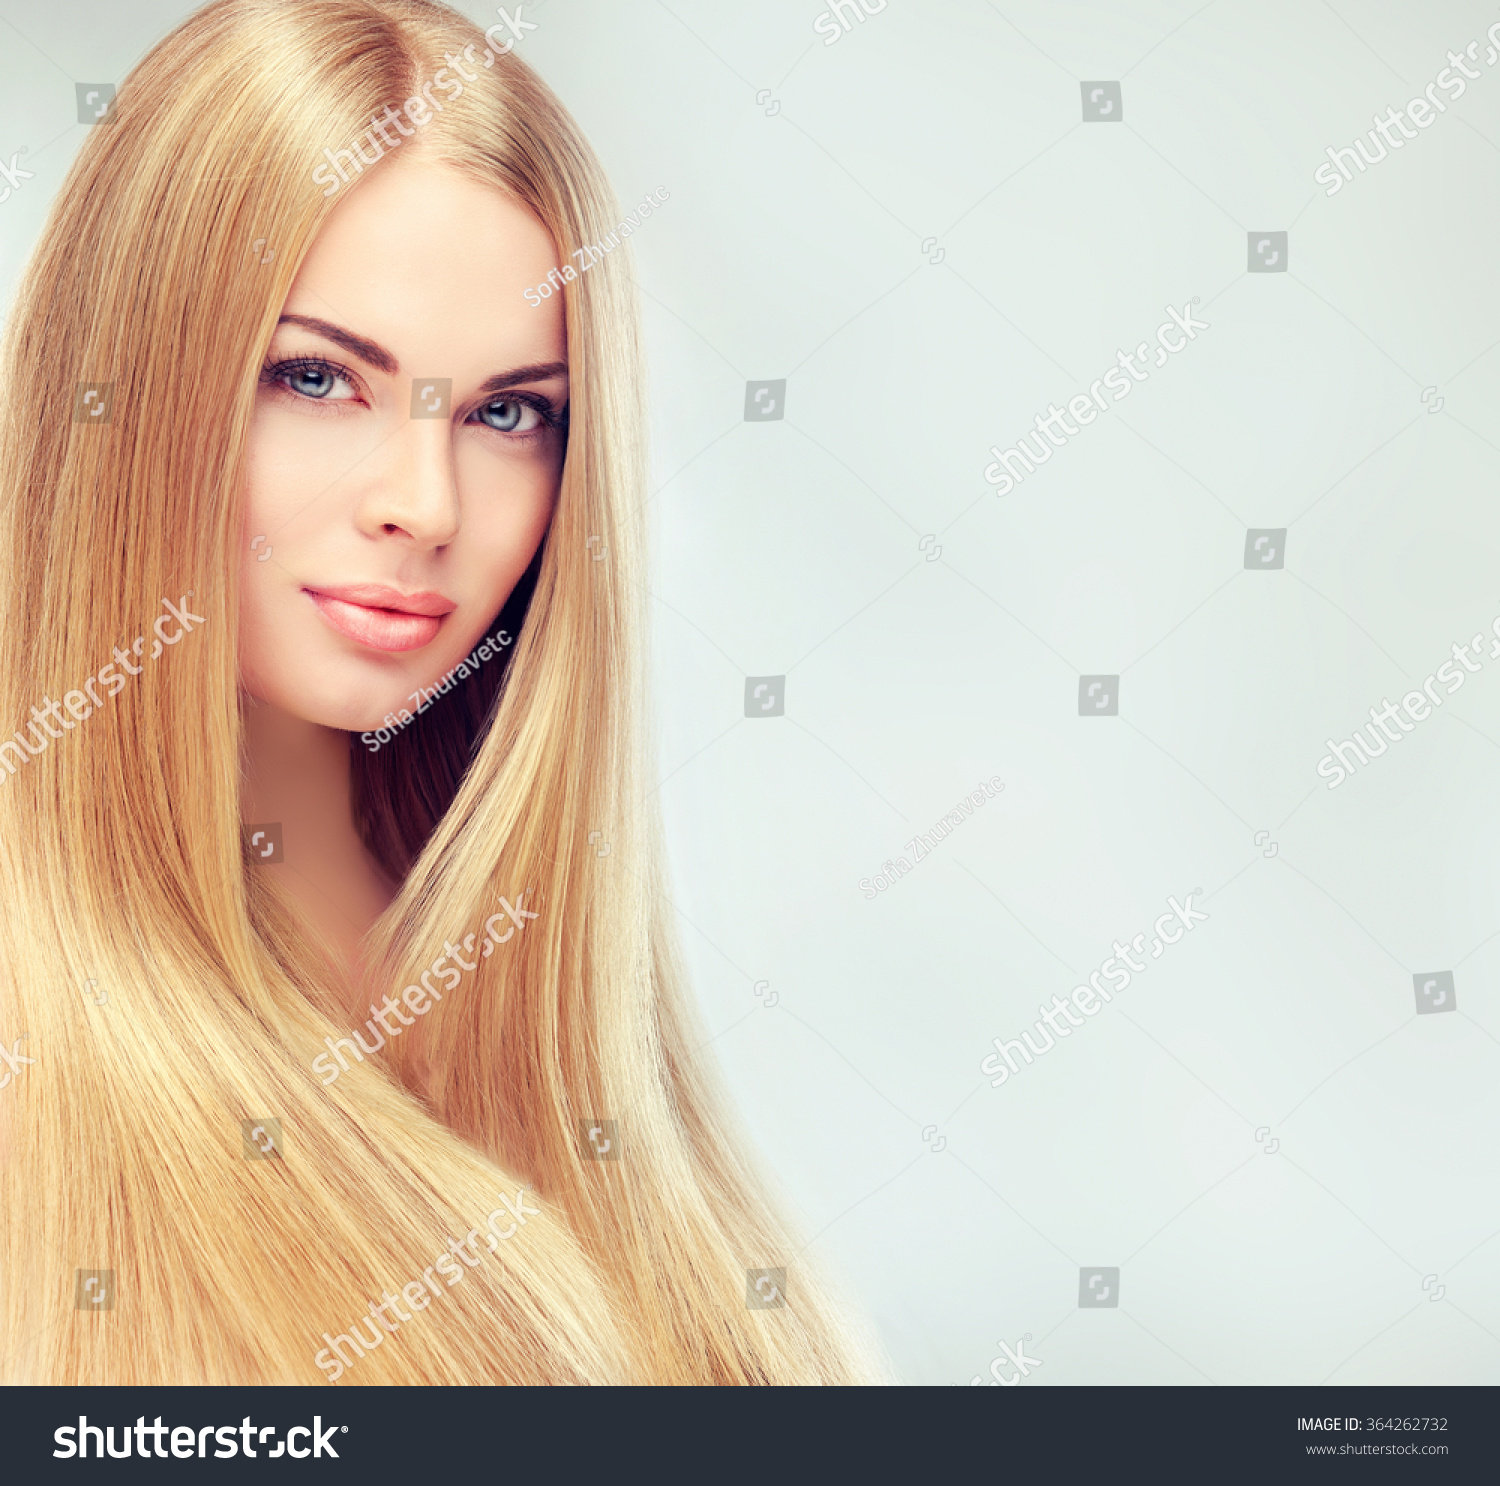 Beautiful Blonde Woman With Long Healthy Straight And Shiny Hair Hairstyle Loose Hair Stock